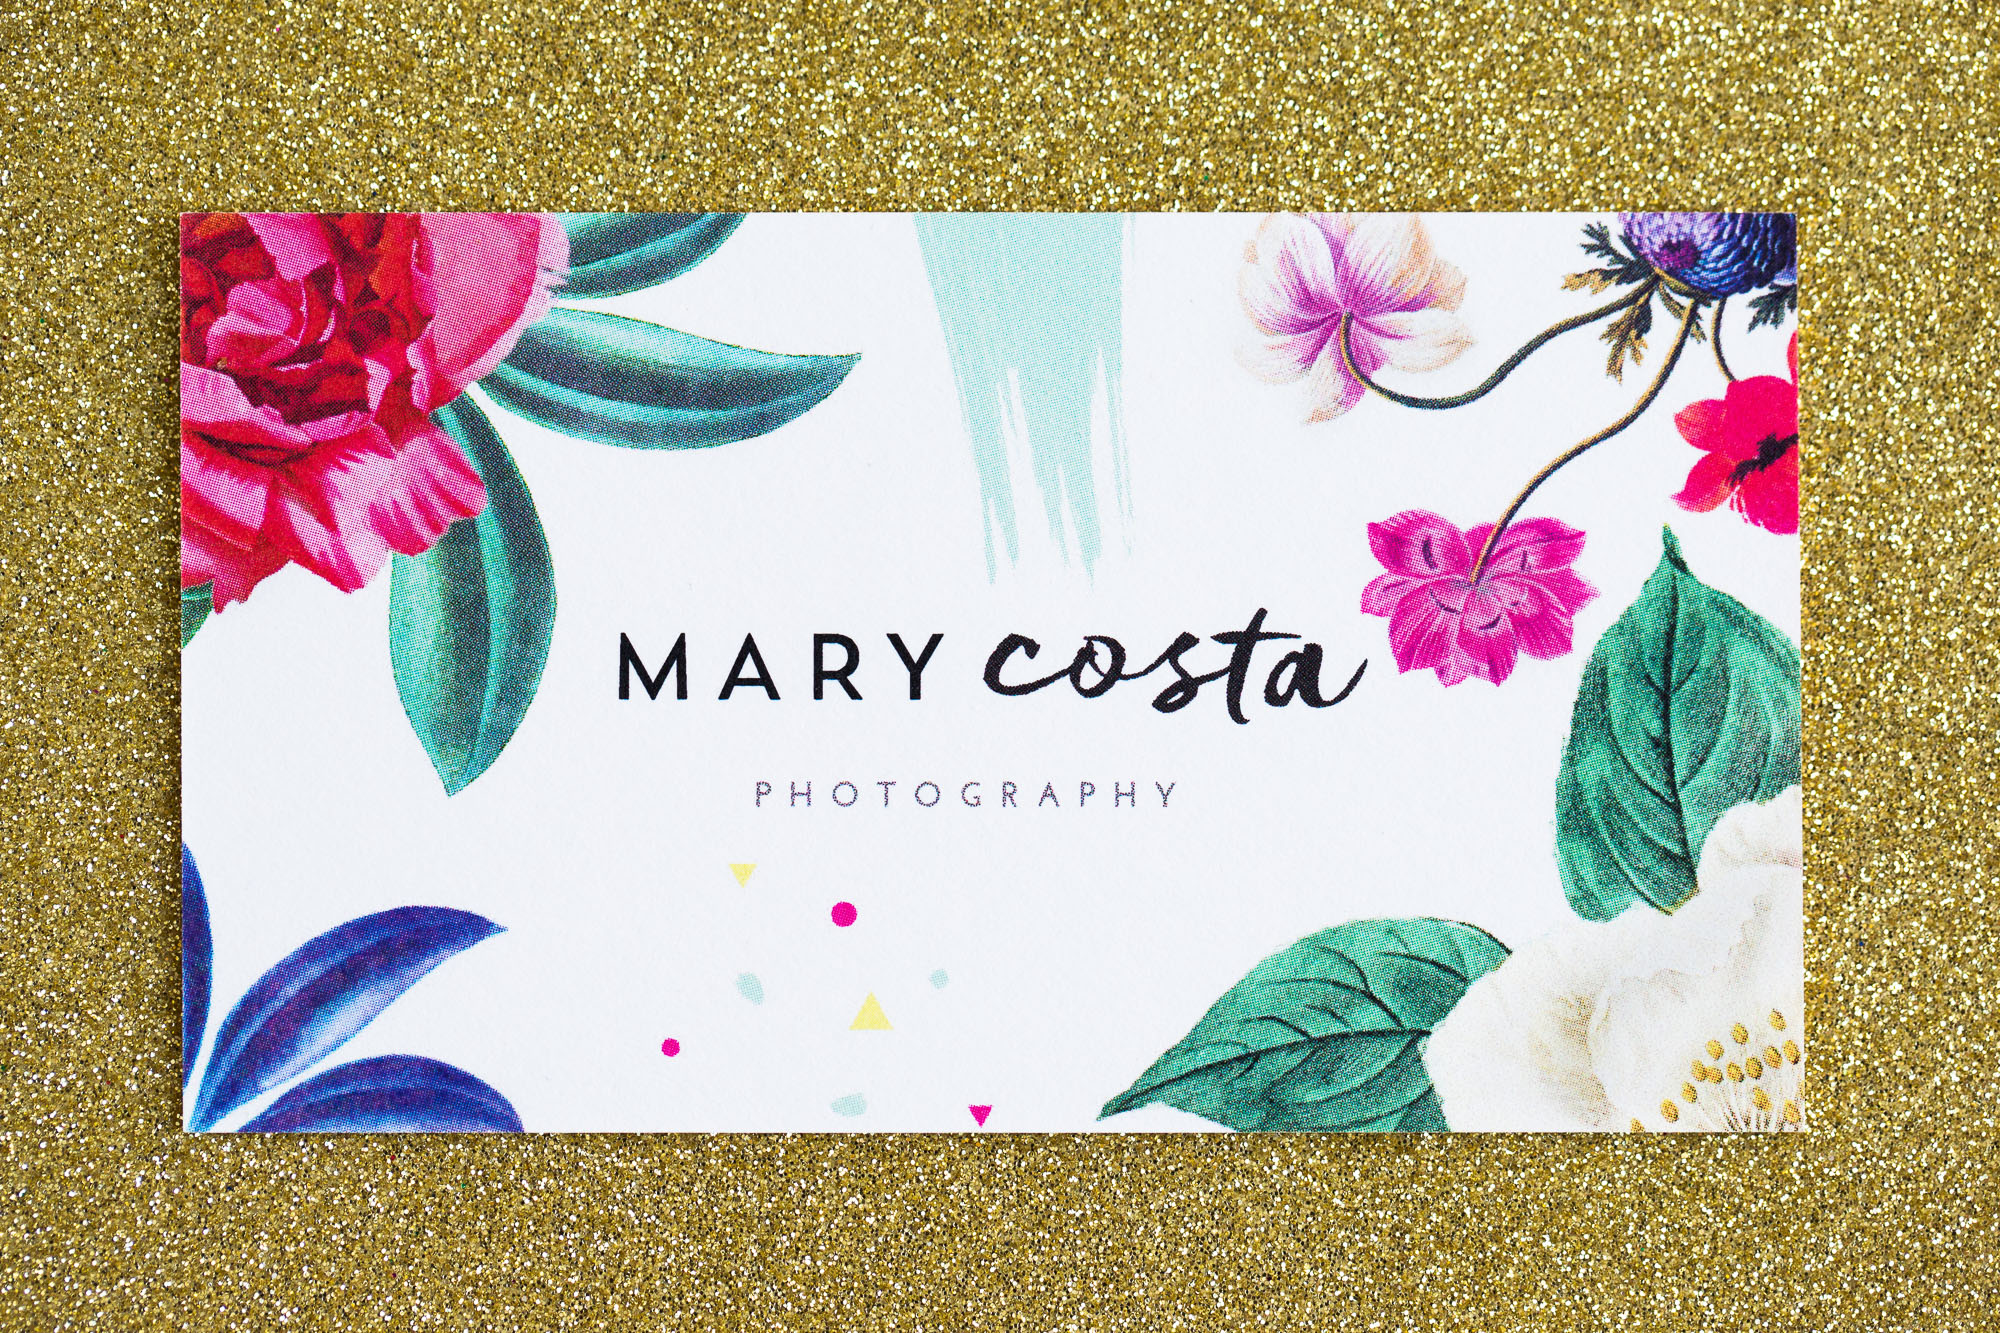 A Brand New Mary Costa Photography!